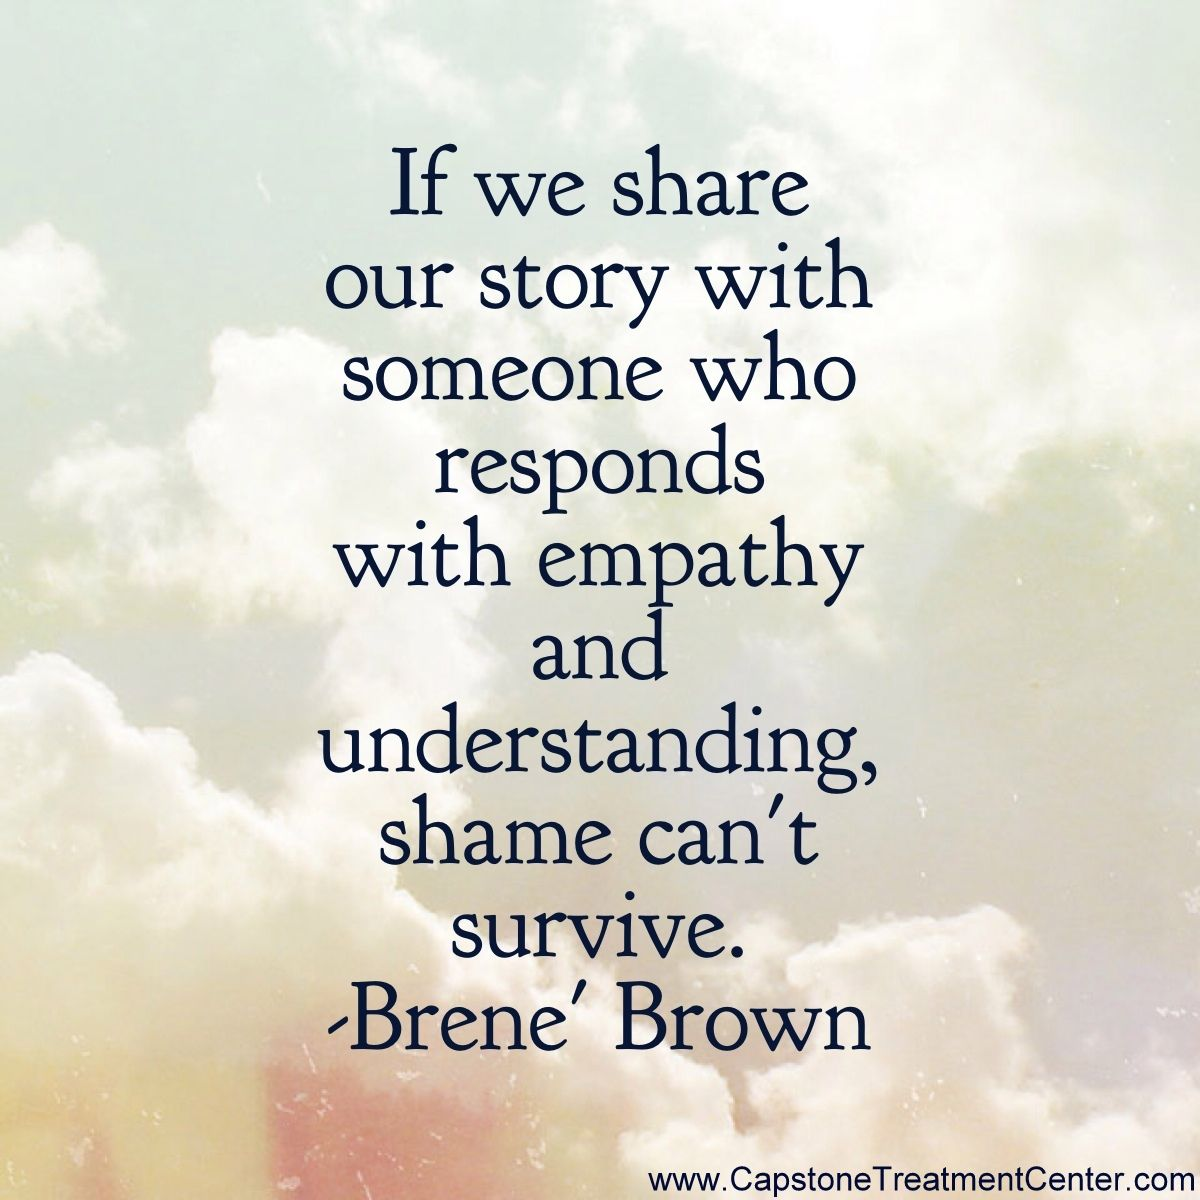 If we share our story with someone who responds with empathy and understanding shame can